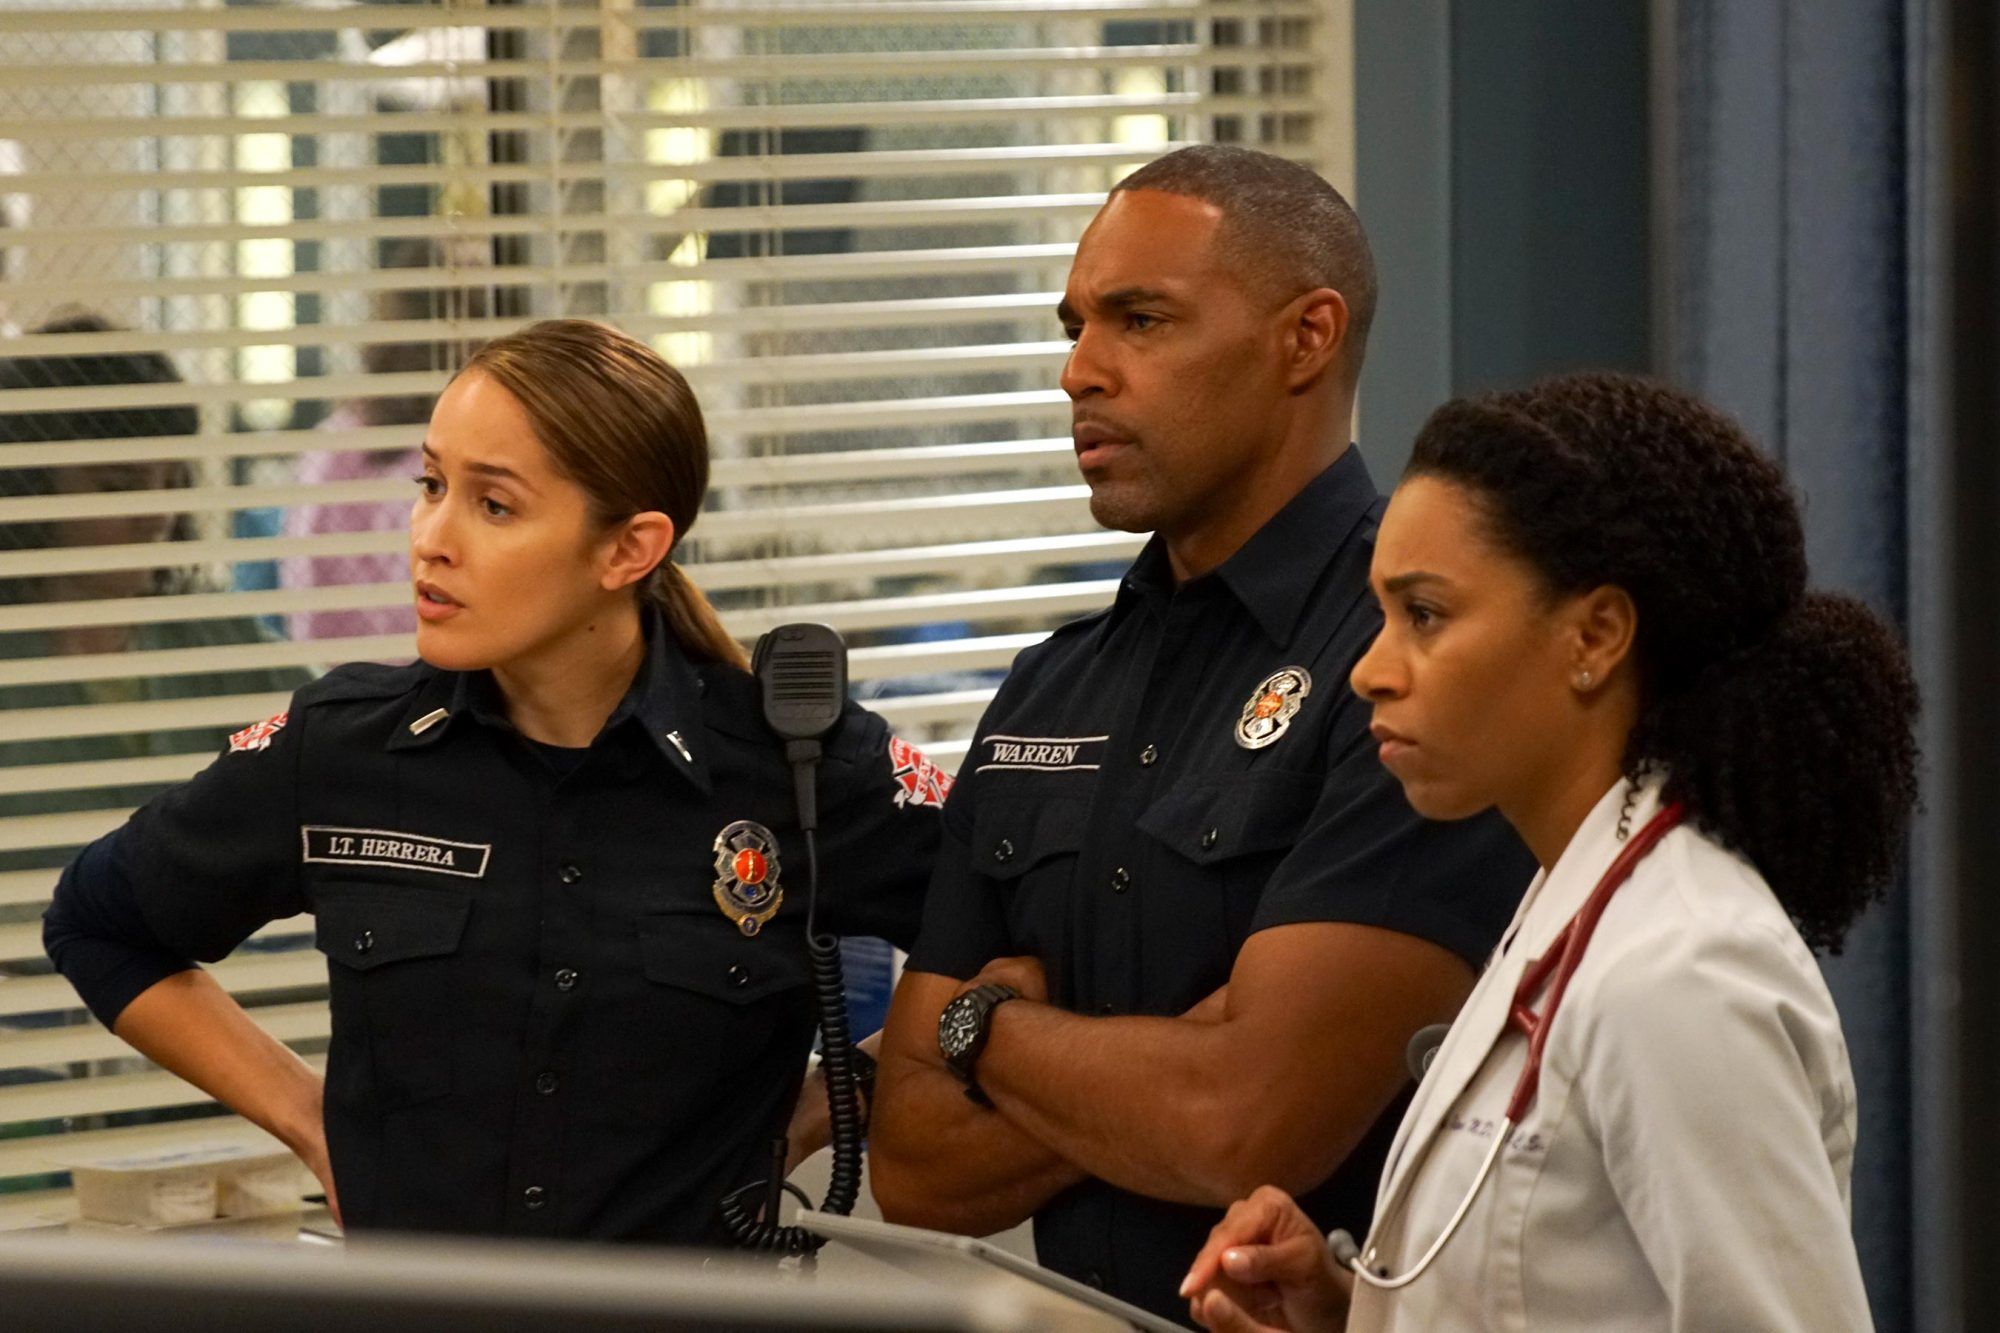 JAINA LEE ORTIZ, JASON GEORGE, KELLY MCCREARY